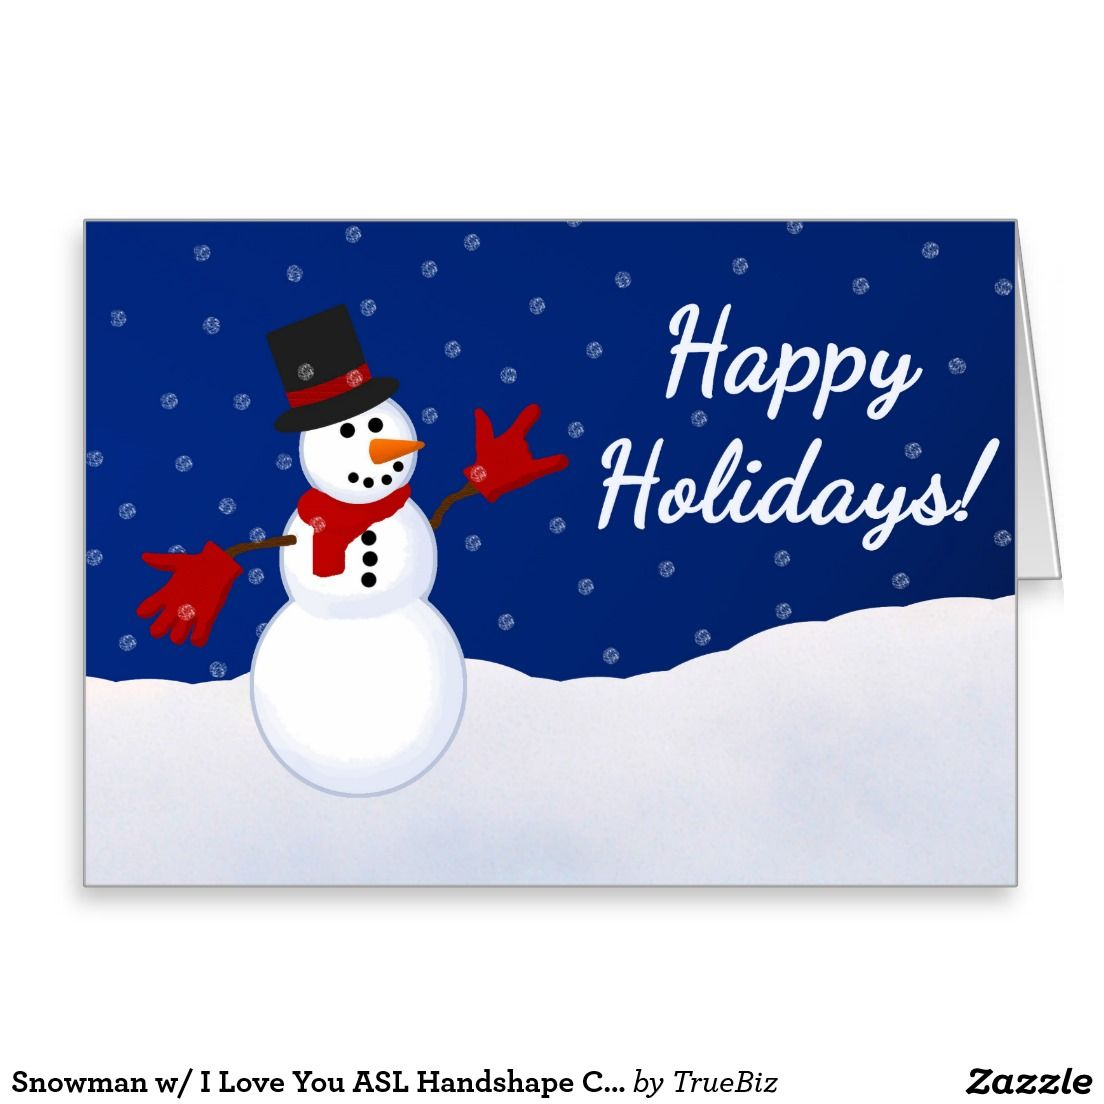 asl snowman w ily handshape christmas card american sign language - How To Sign A Christmas Card